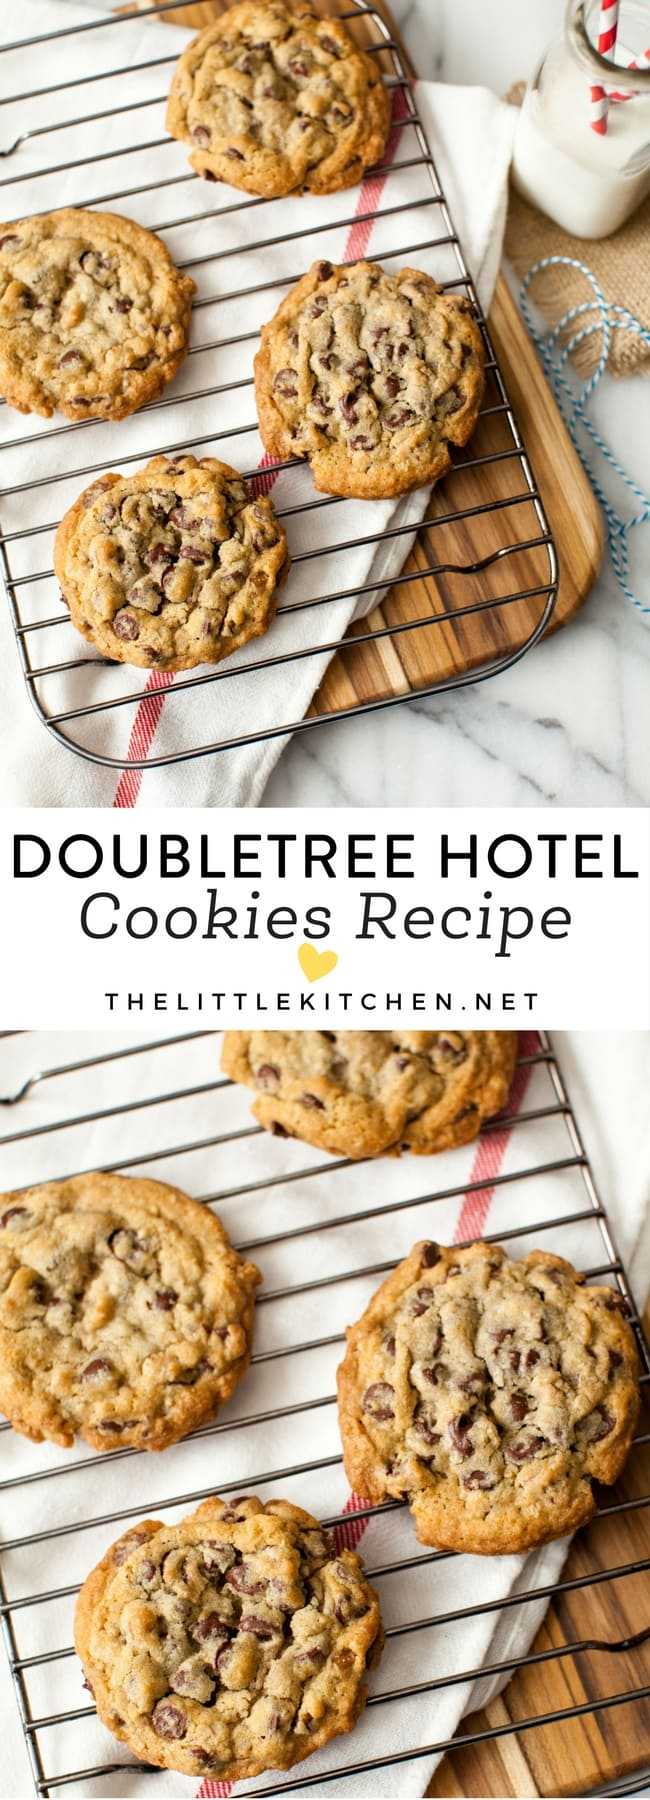 Doubletree Cookie Recipe | The Little Kitchen